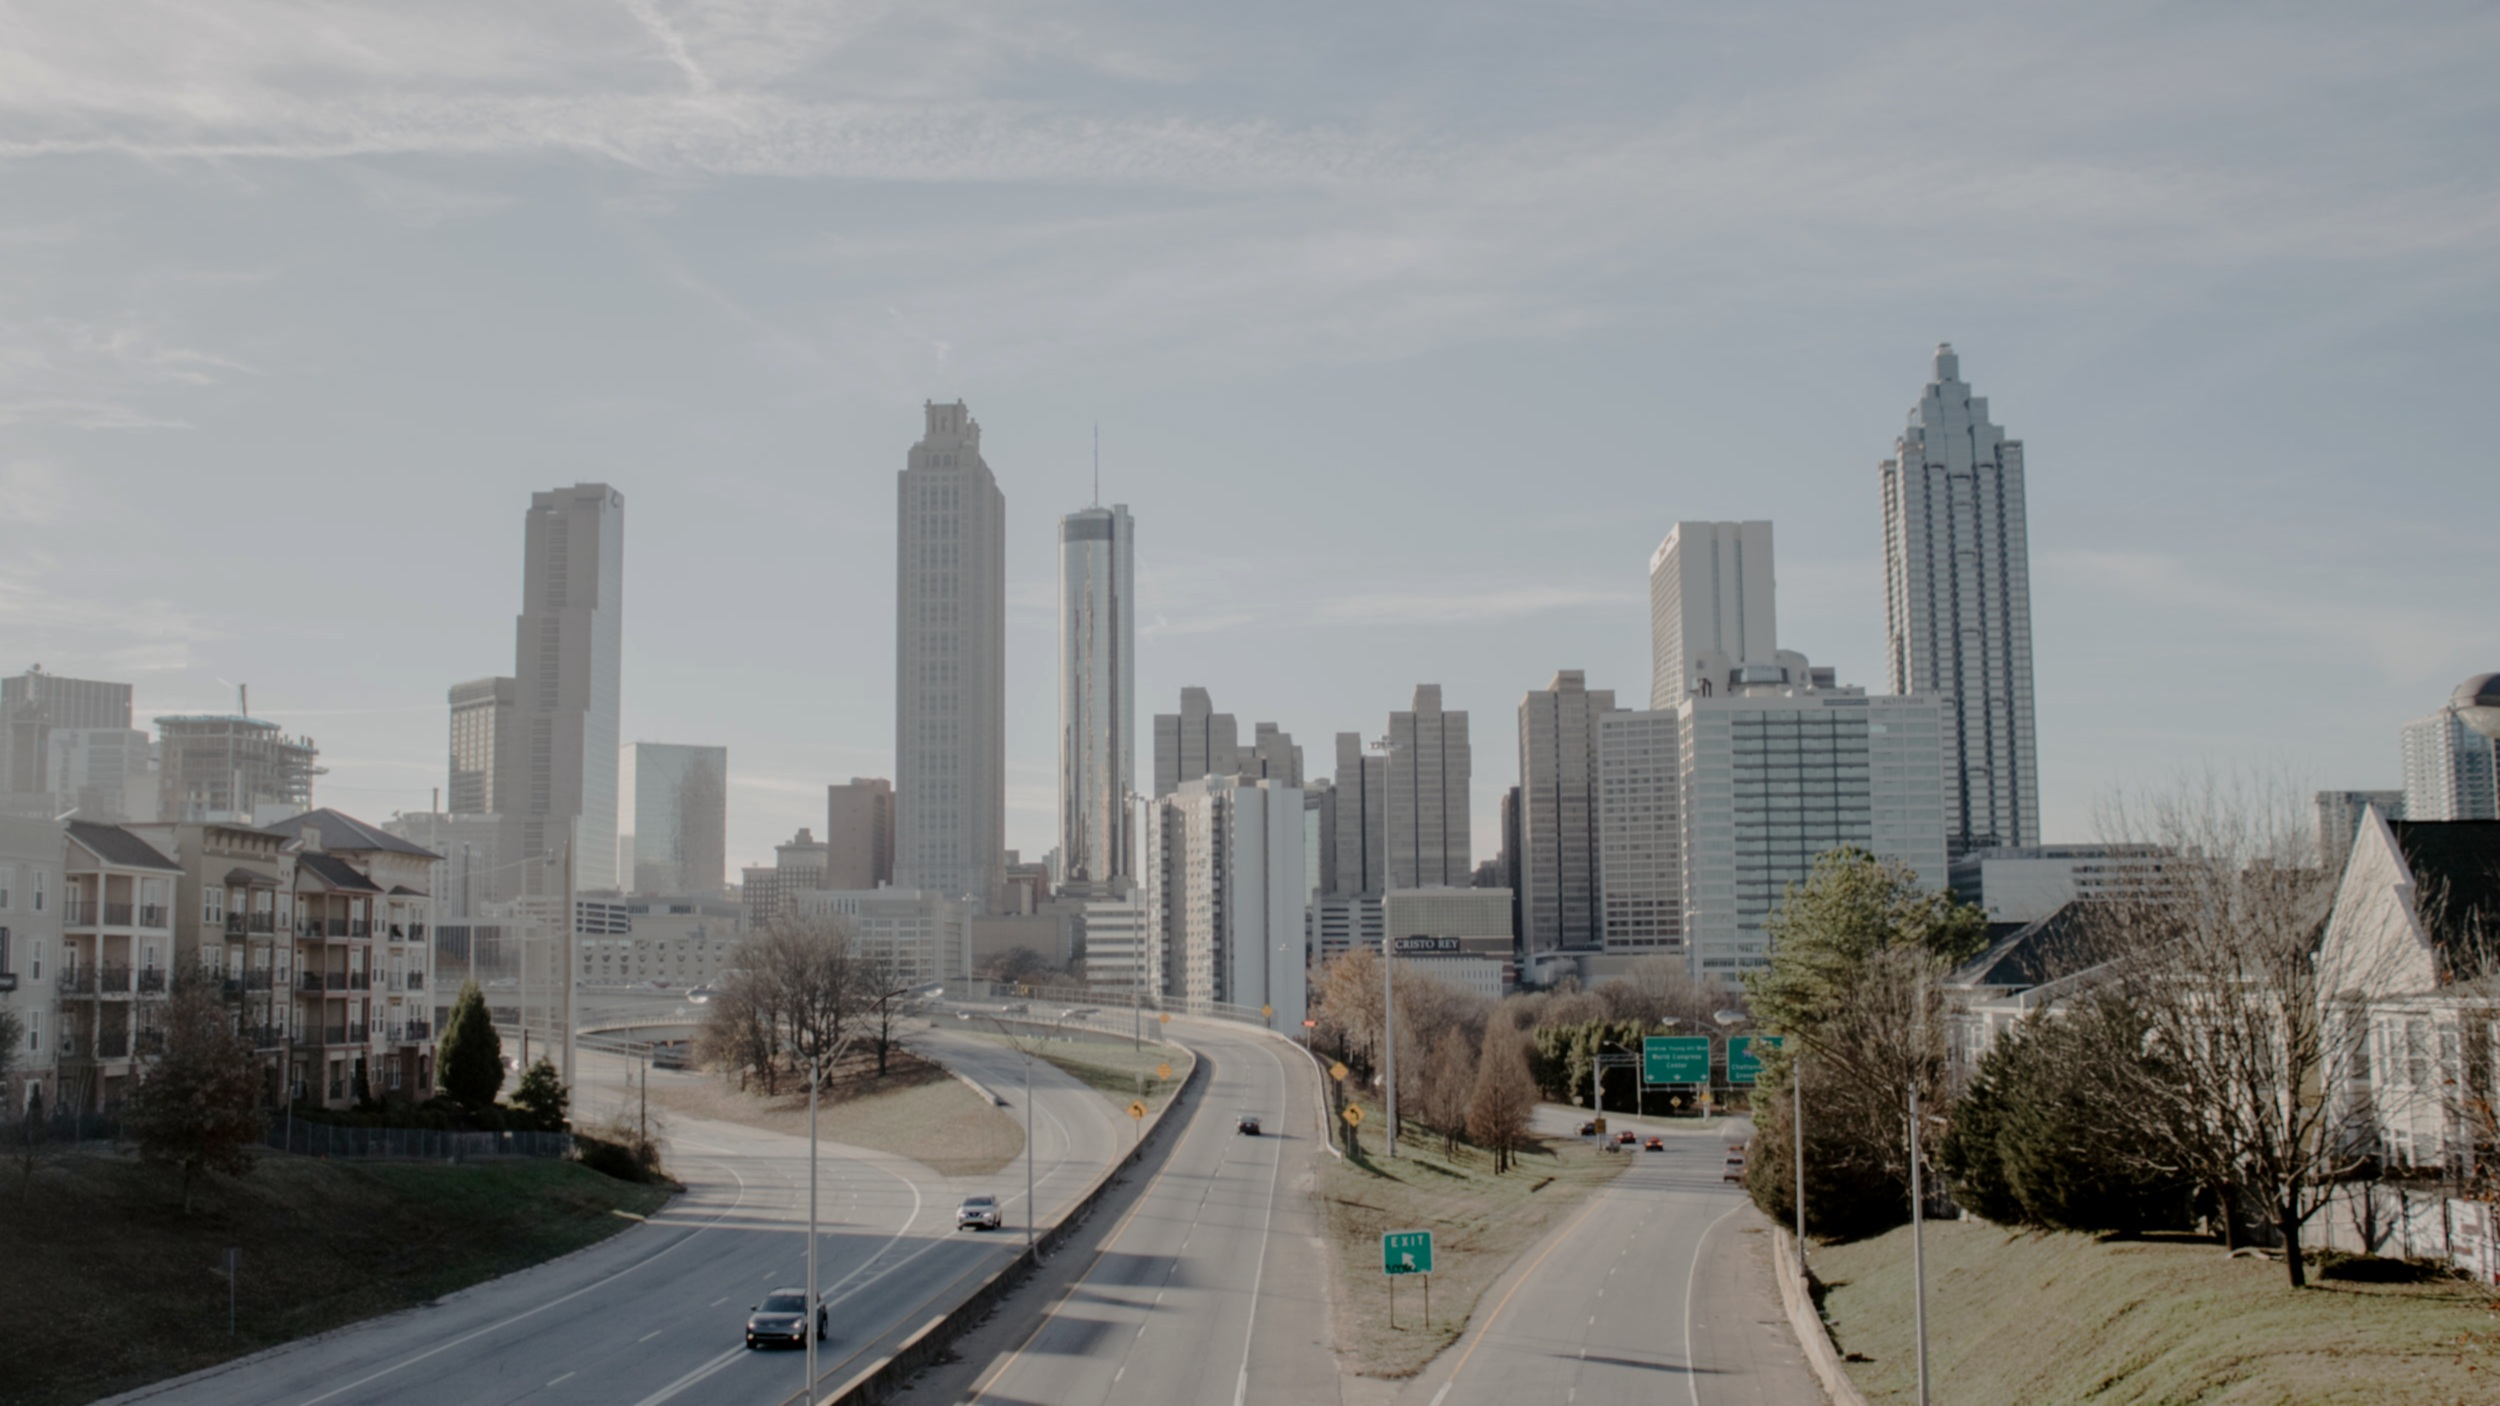 ATLANTA - We're Based in Atlanta, and on a Quest to Get Back Every Dollar Lost to AD Fraud.